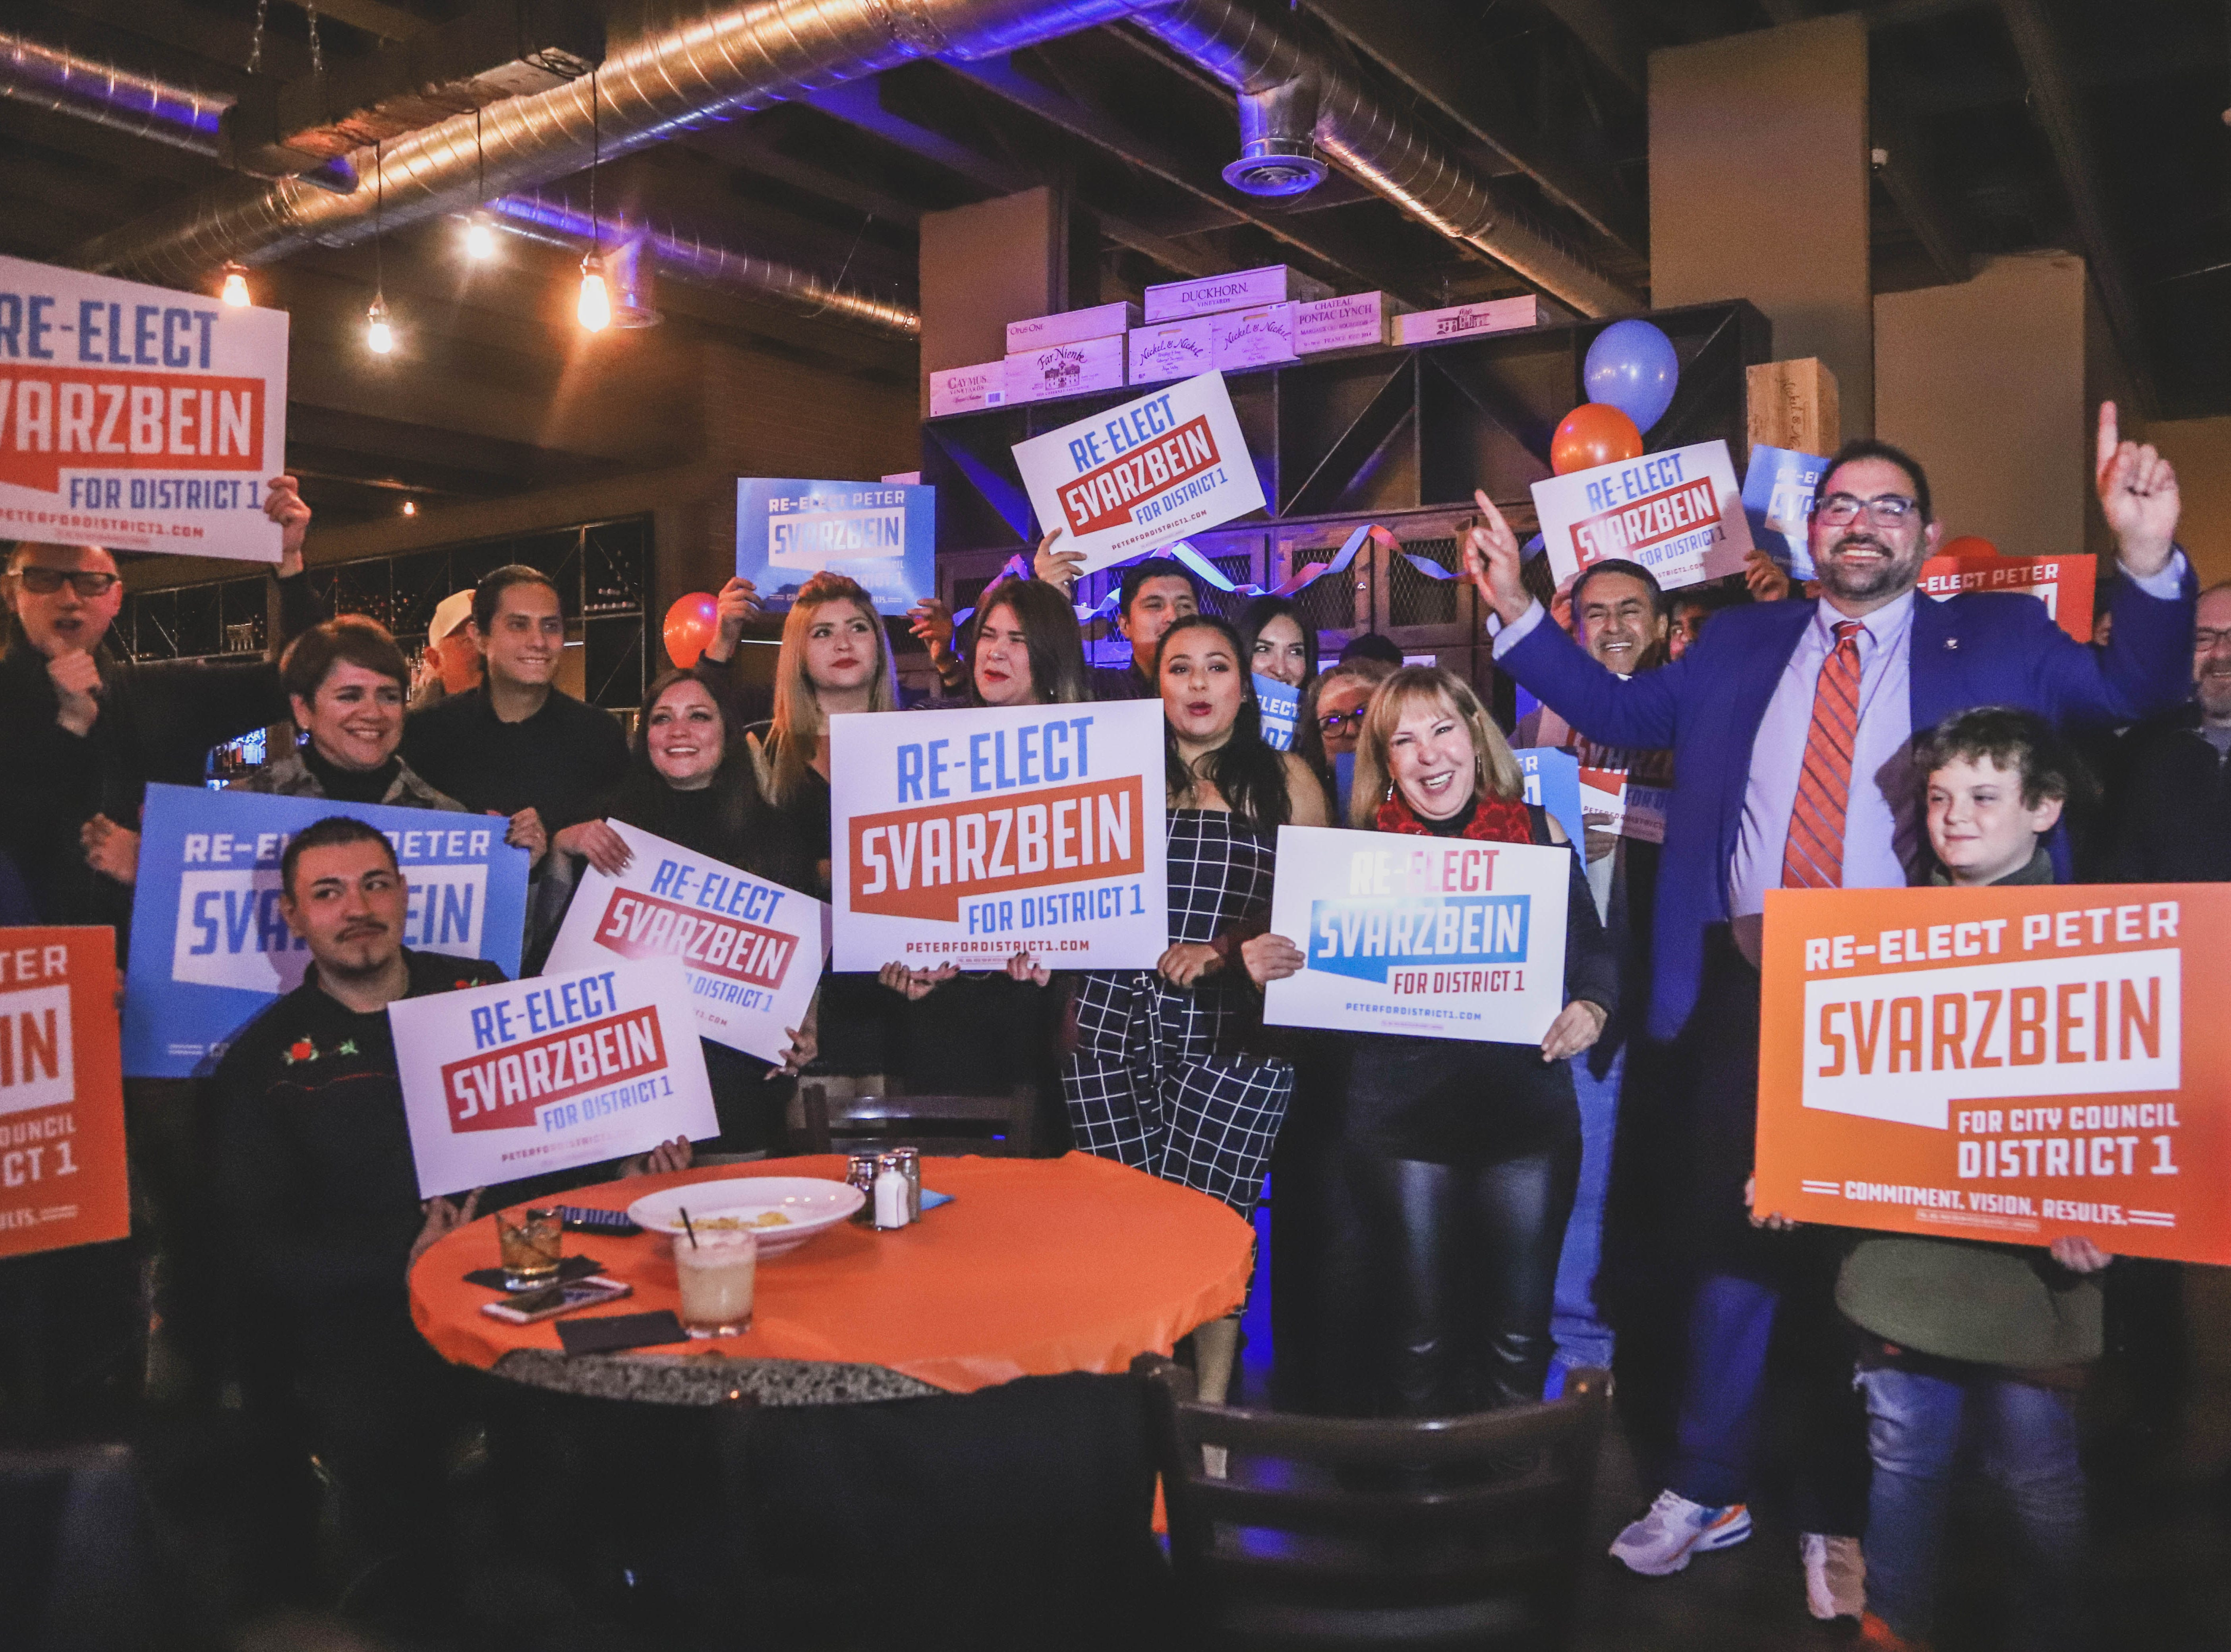 District 1 city Rep. Peter Svarzbein, third from right,celebrates his re-election at his watch party Saturday, Dec. 15, 2018, at Holy Grail.